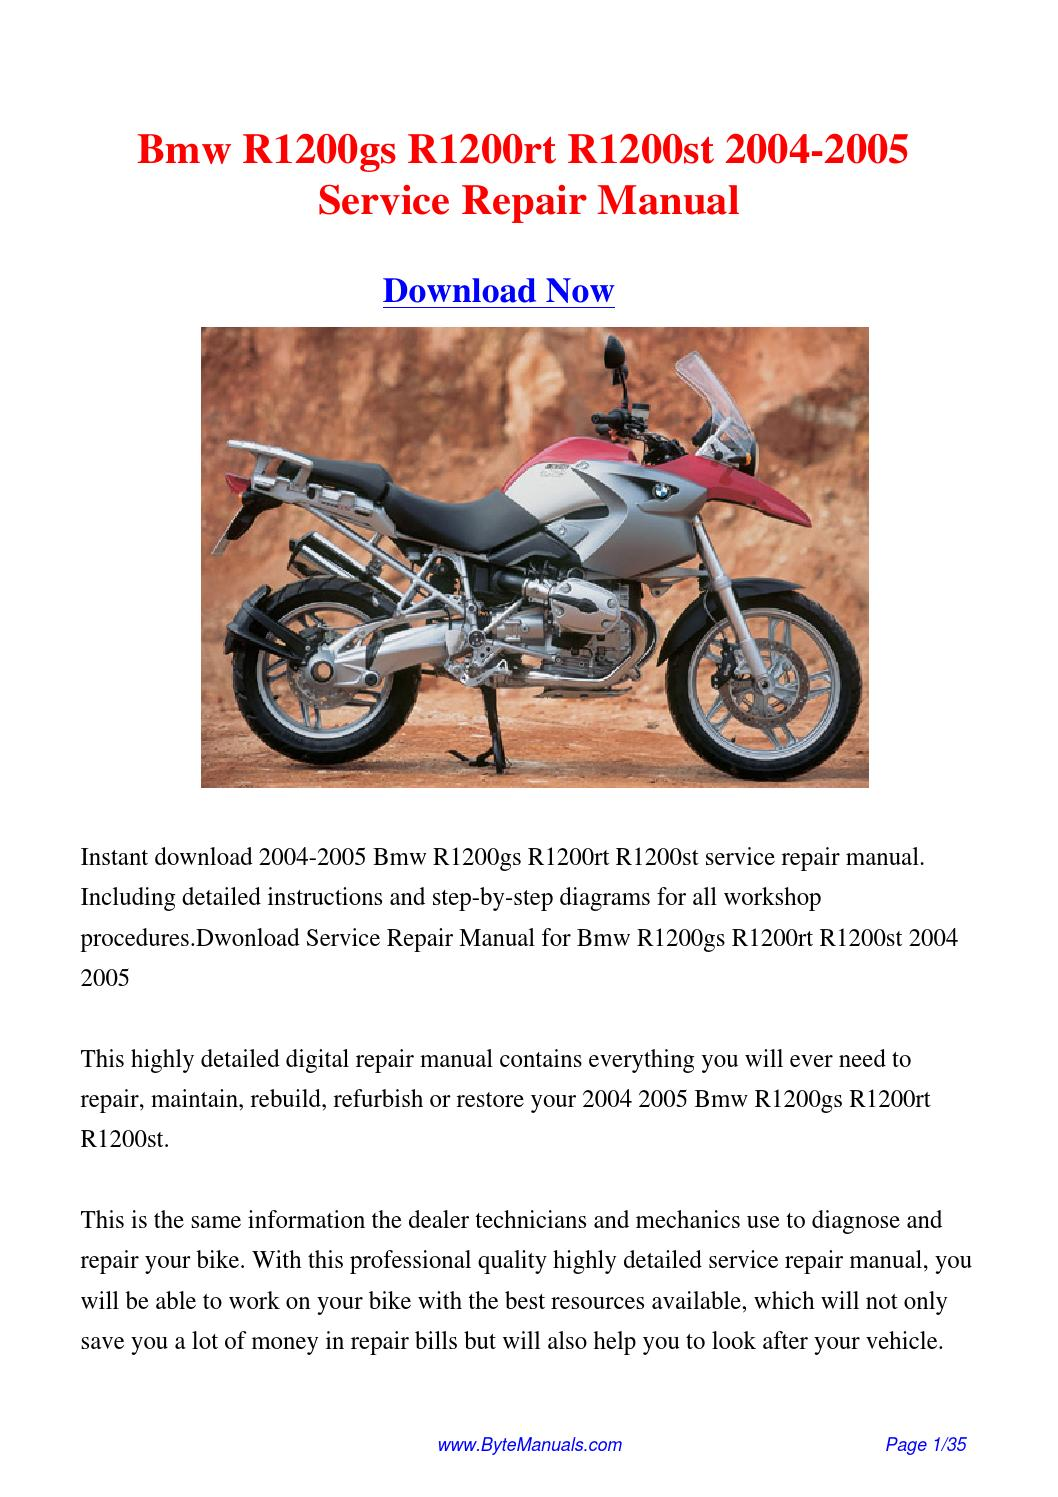 2005 bmw r1200gs owners manual pdf